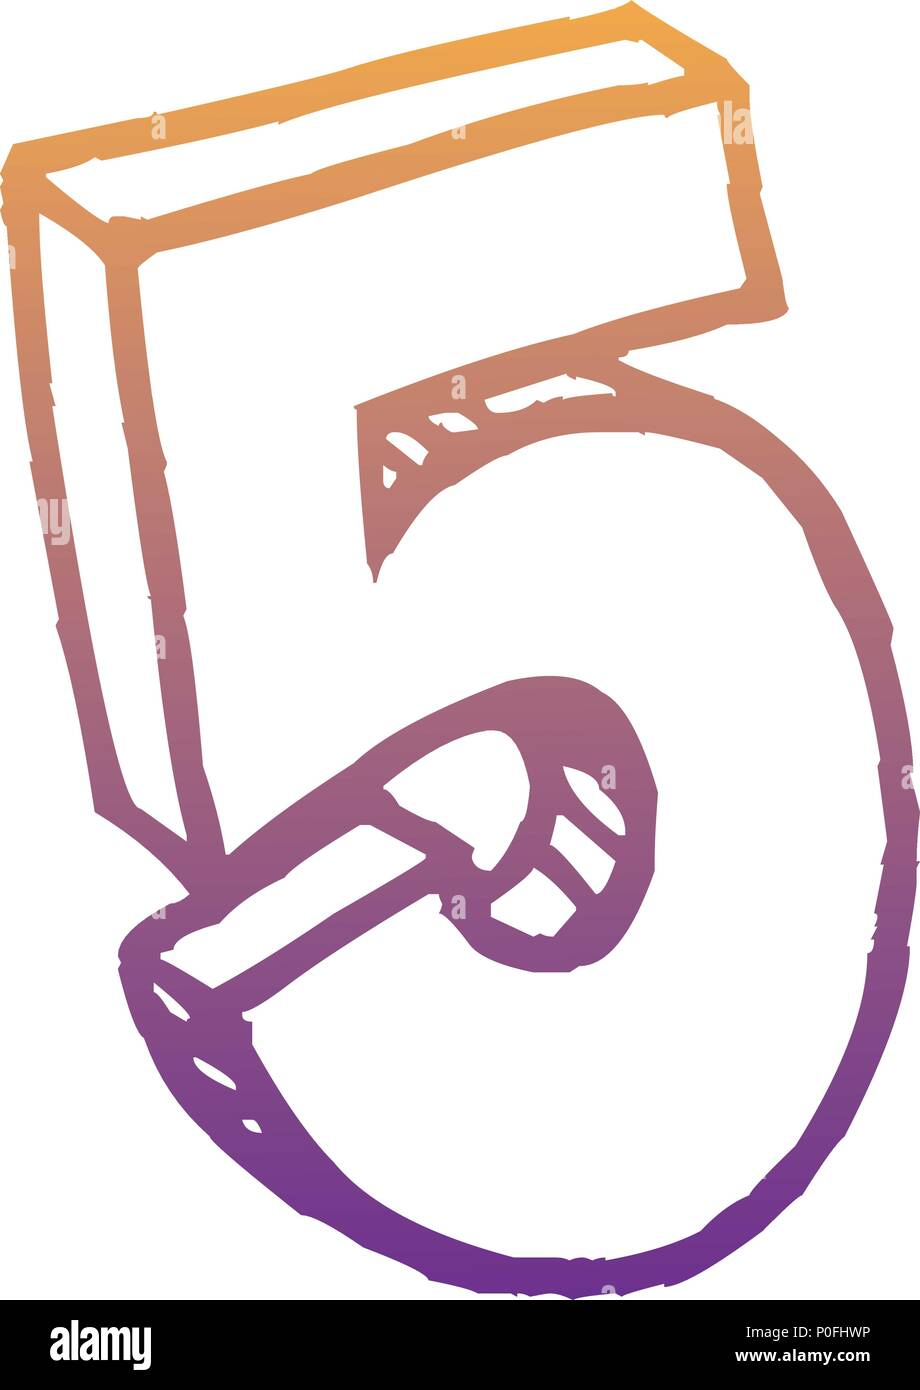 number five icon over white background, vector illustration - Stock Image